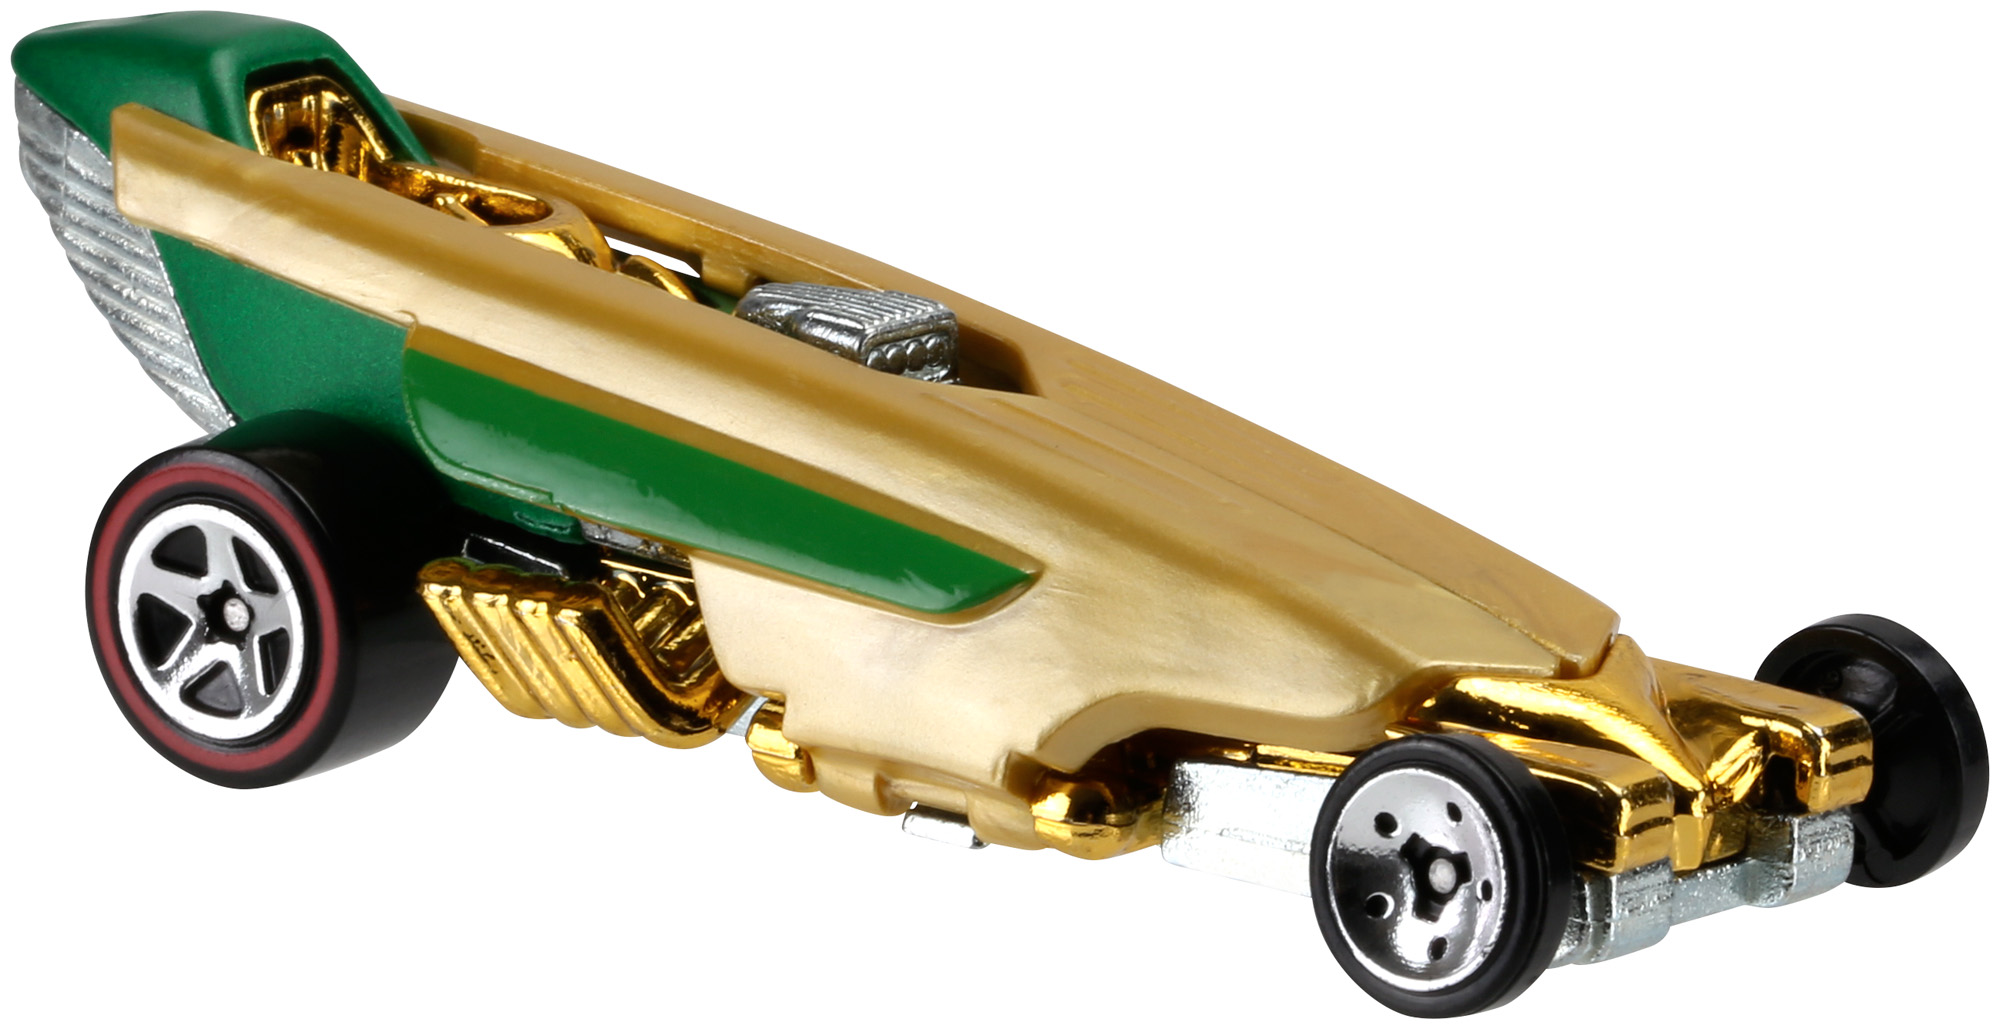 Hot Wheels DC Universe Hawkman Vehicle by Mattel